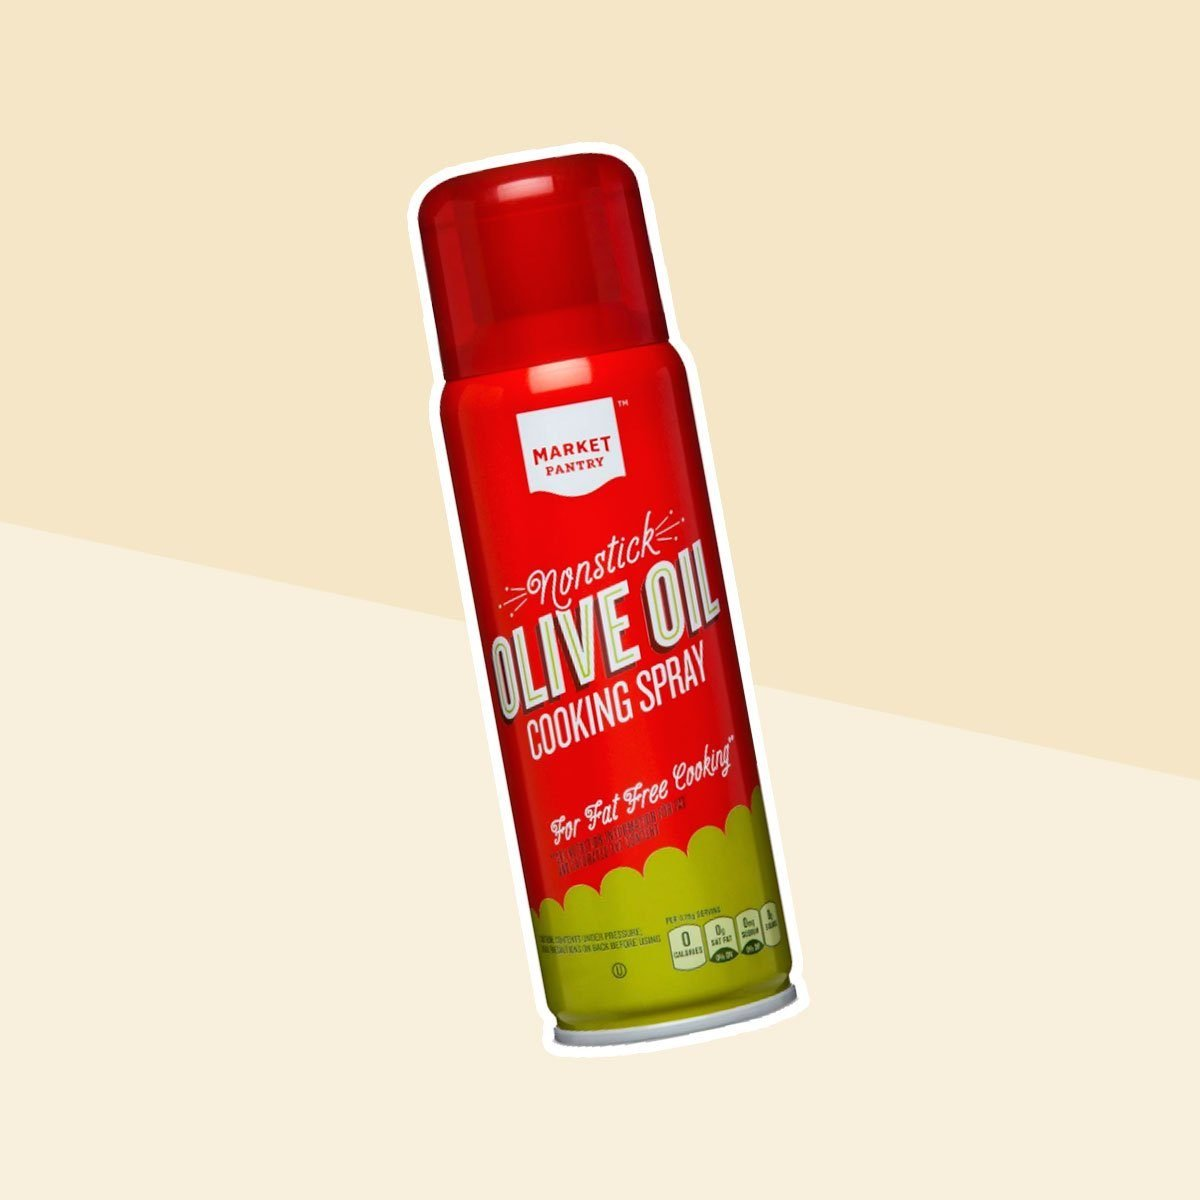 Olive Oil Cooking Spray - 5oz - Market Pantry™